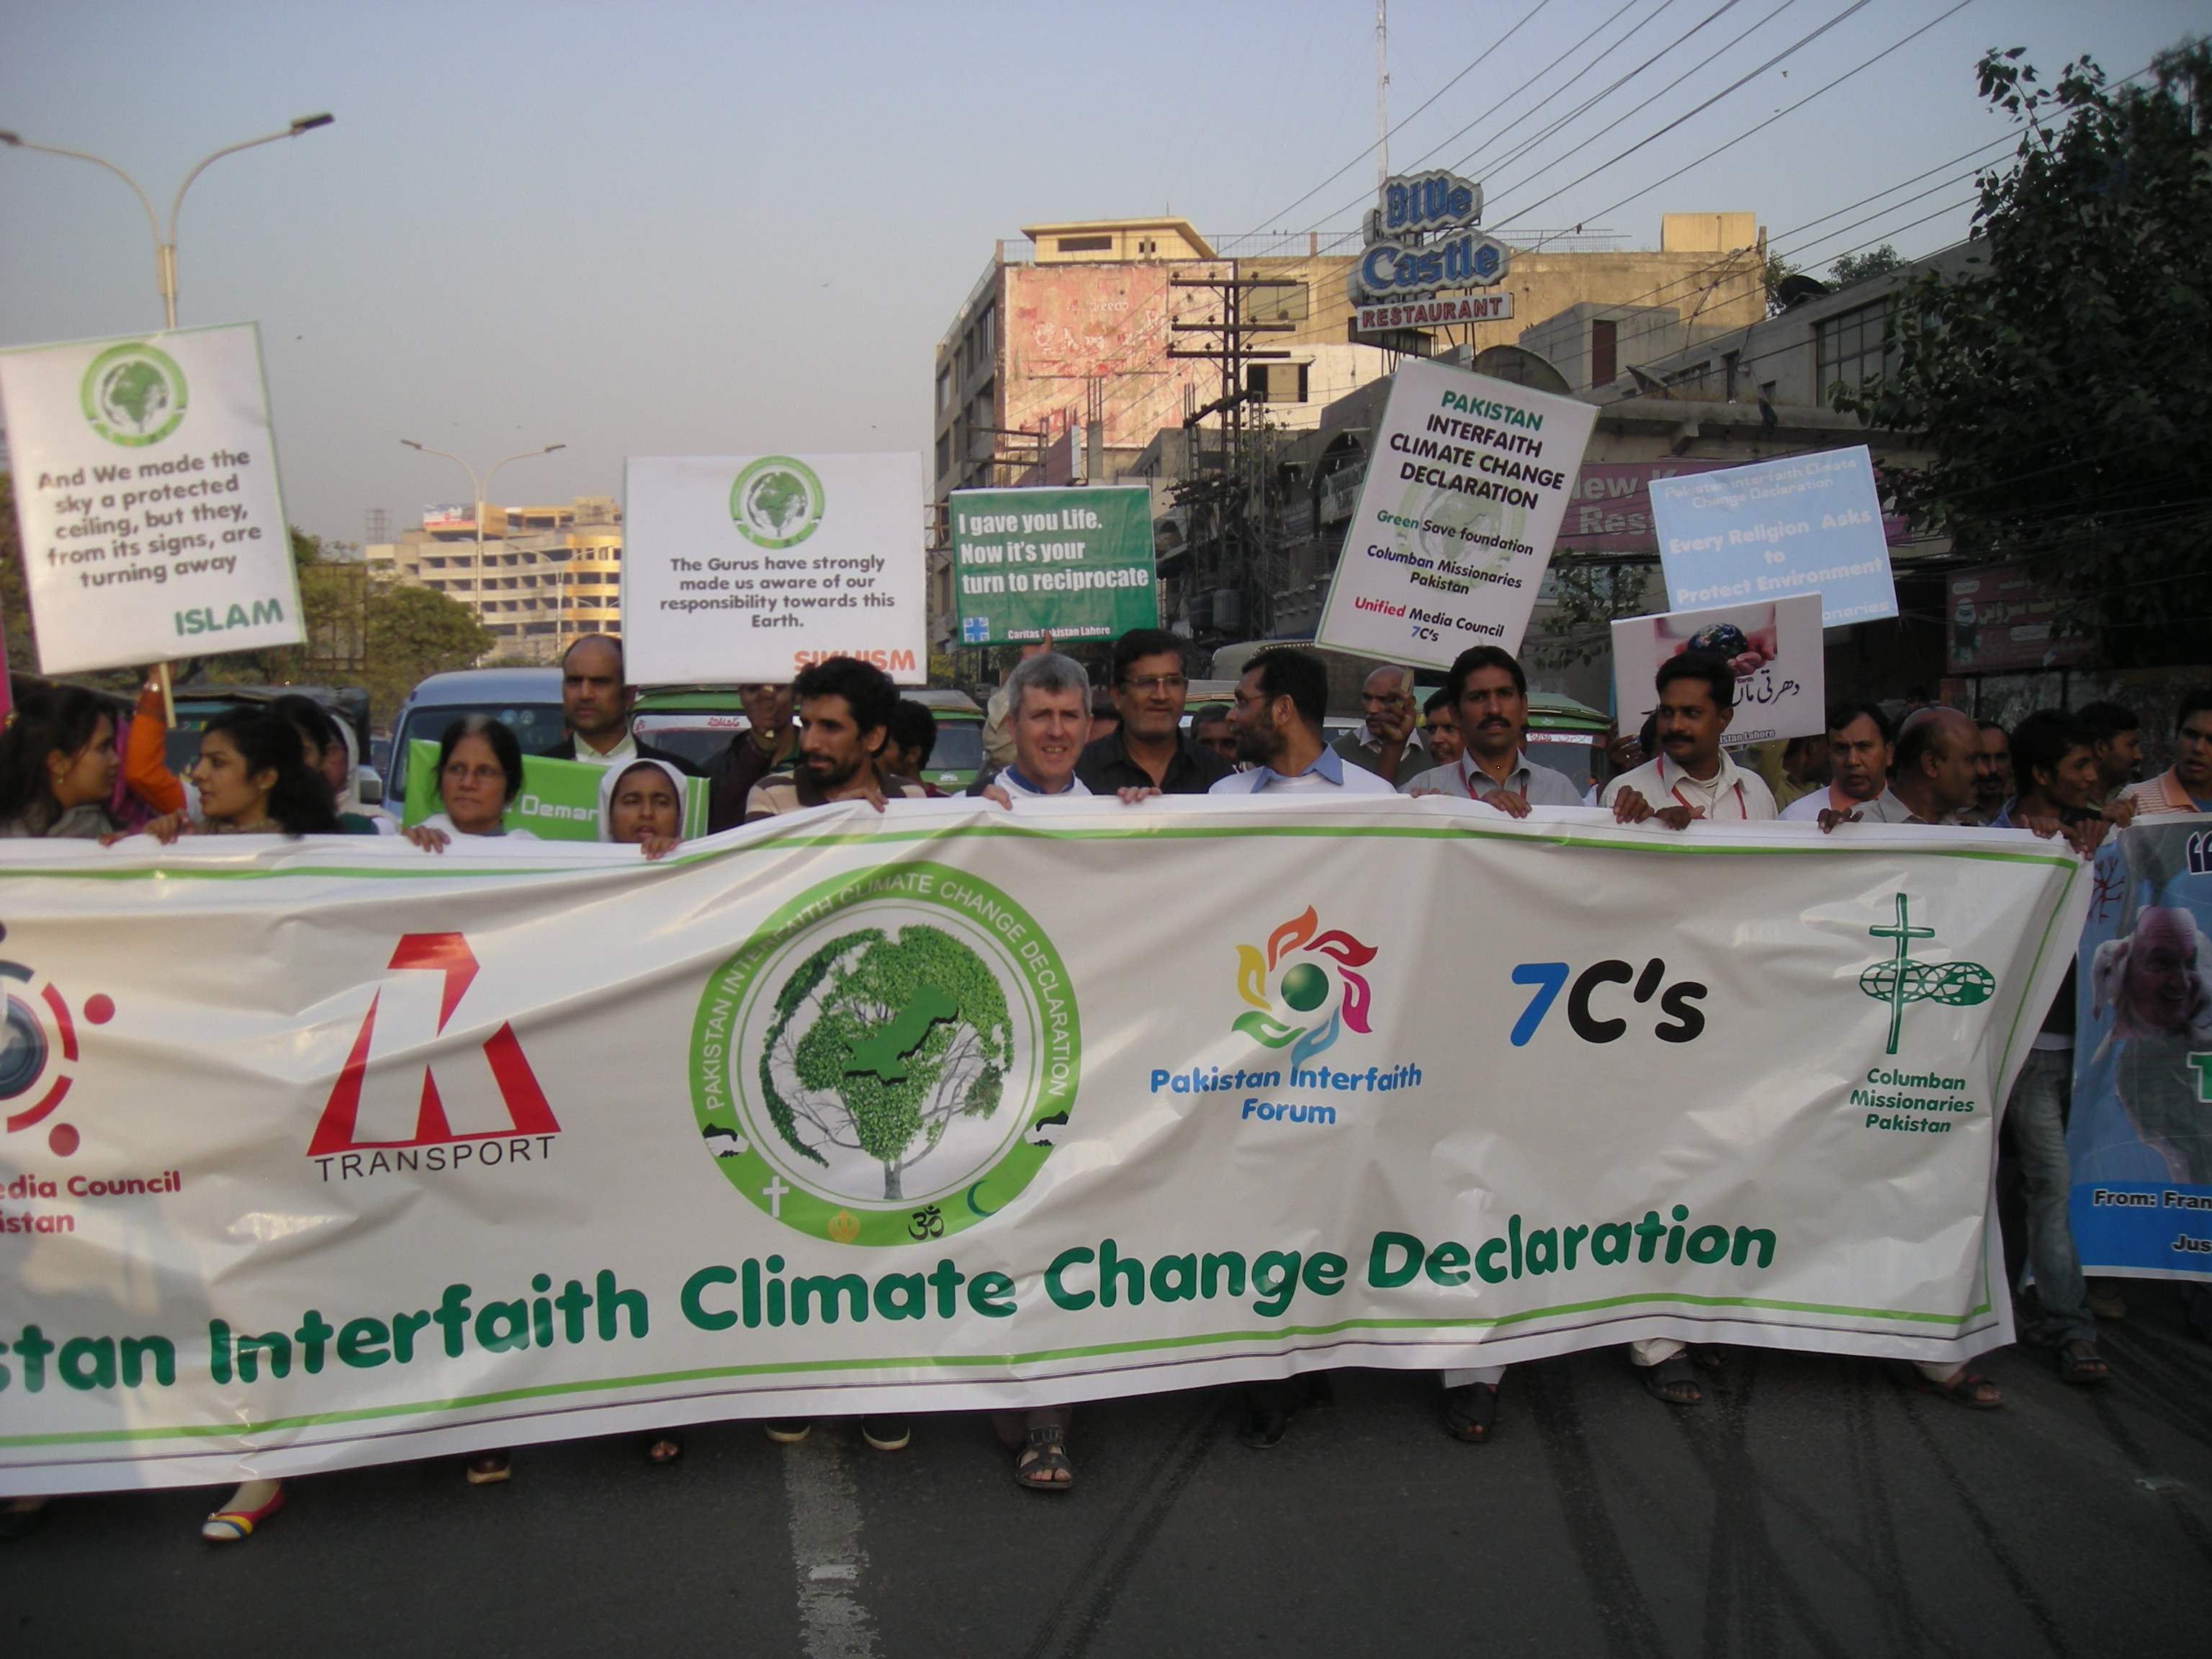 In South Asia, church finds a voice on climate change